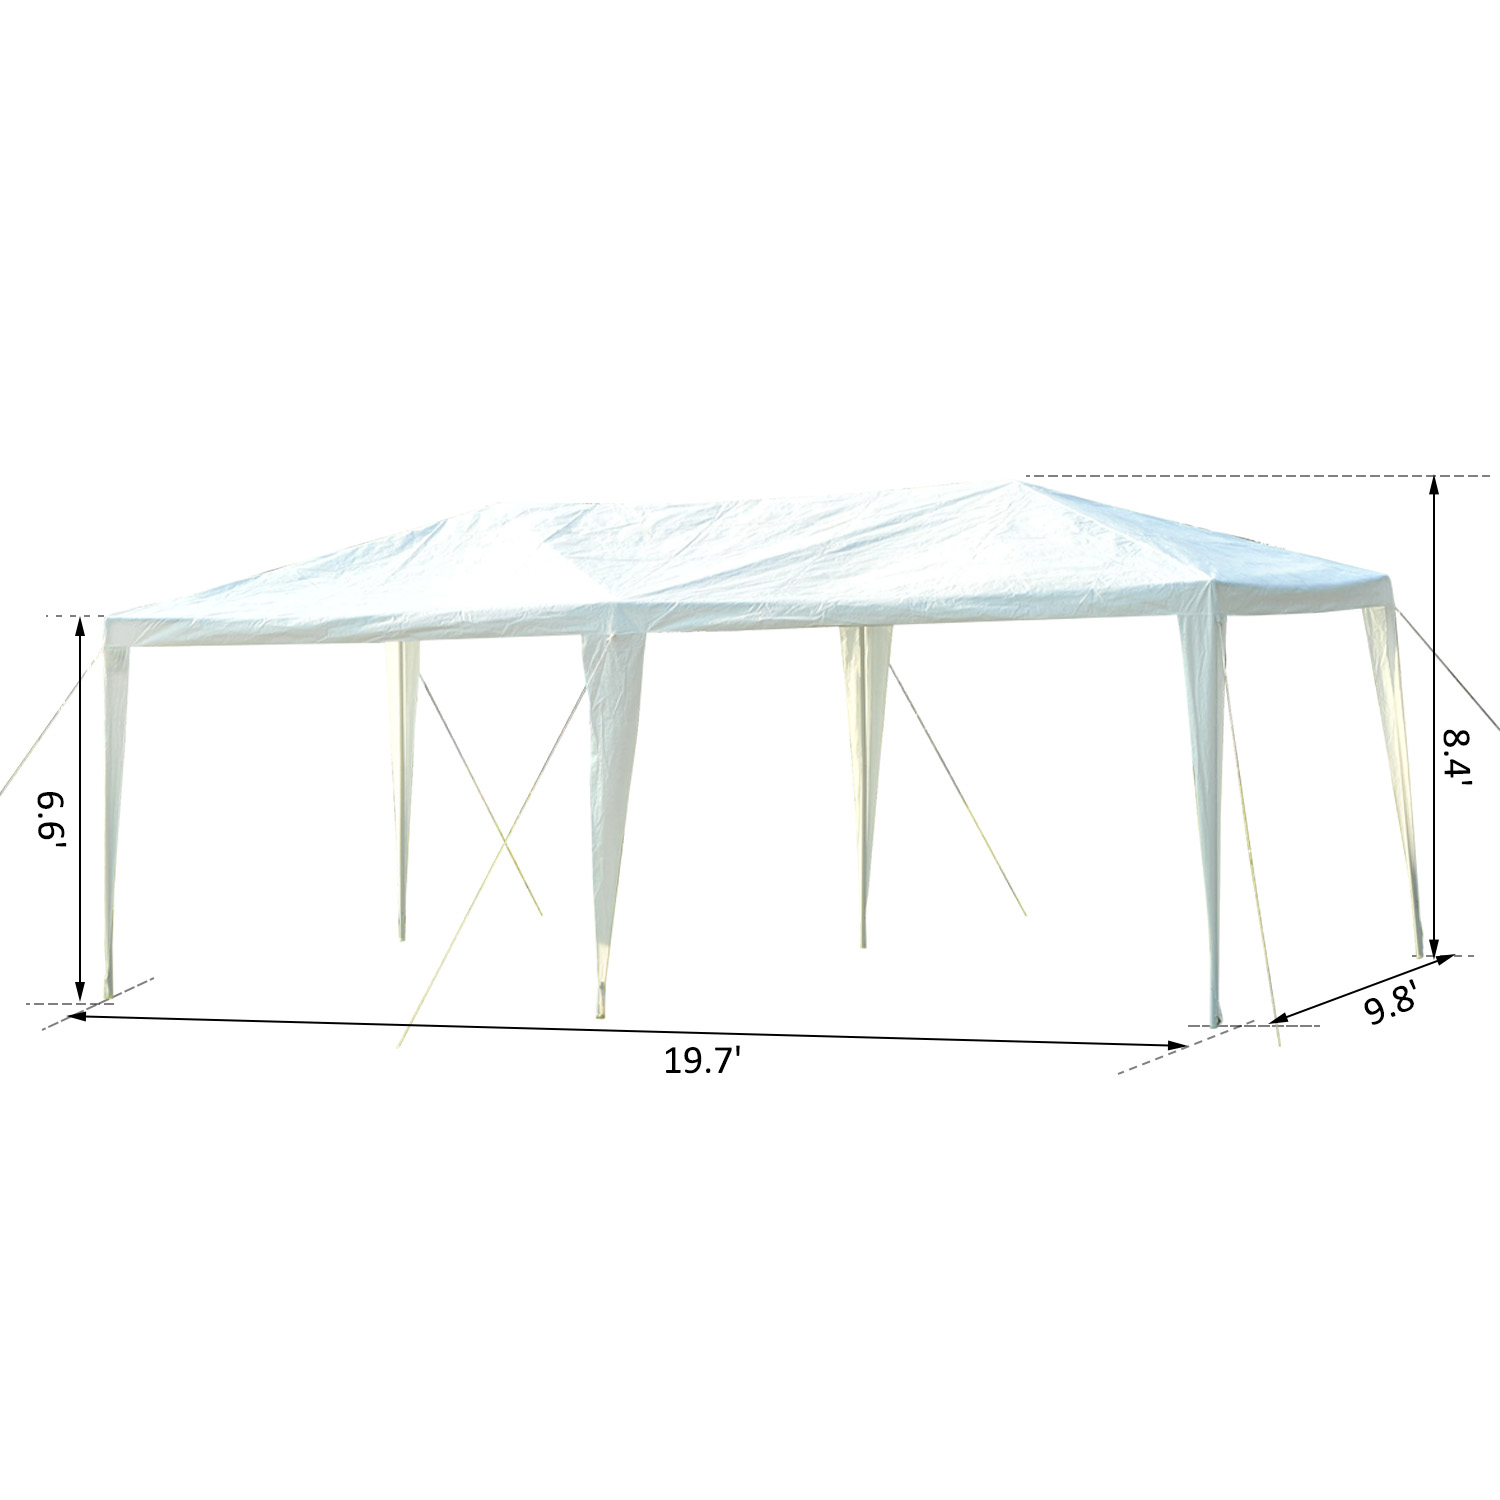 10-039-x-20-039-Gazebo-Canopy-Cover-Tent-Patio-Party-w-Removable-Mesh-Side-Walls thumbnail 12